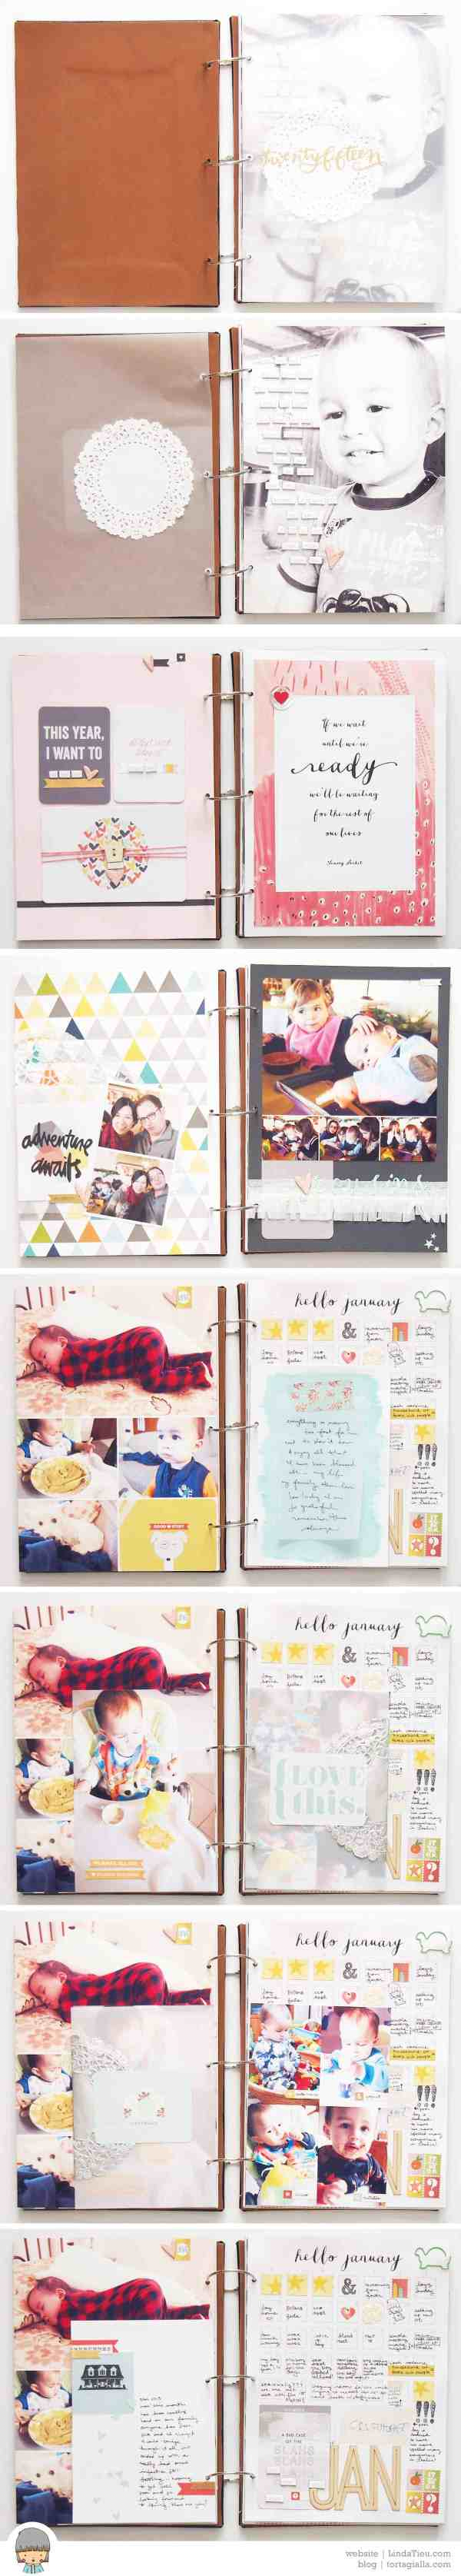 LTieu-2015-jan-memorybook